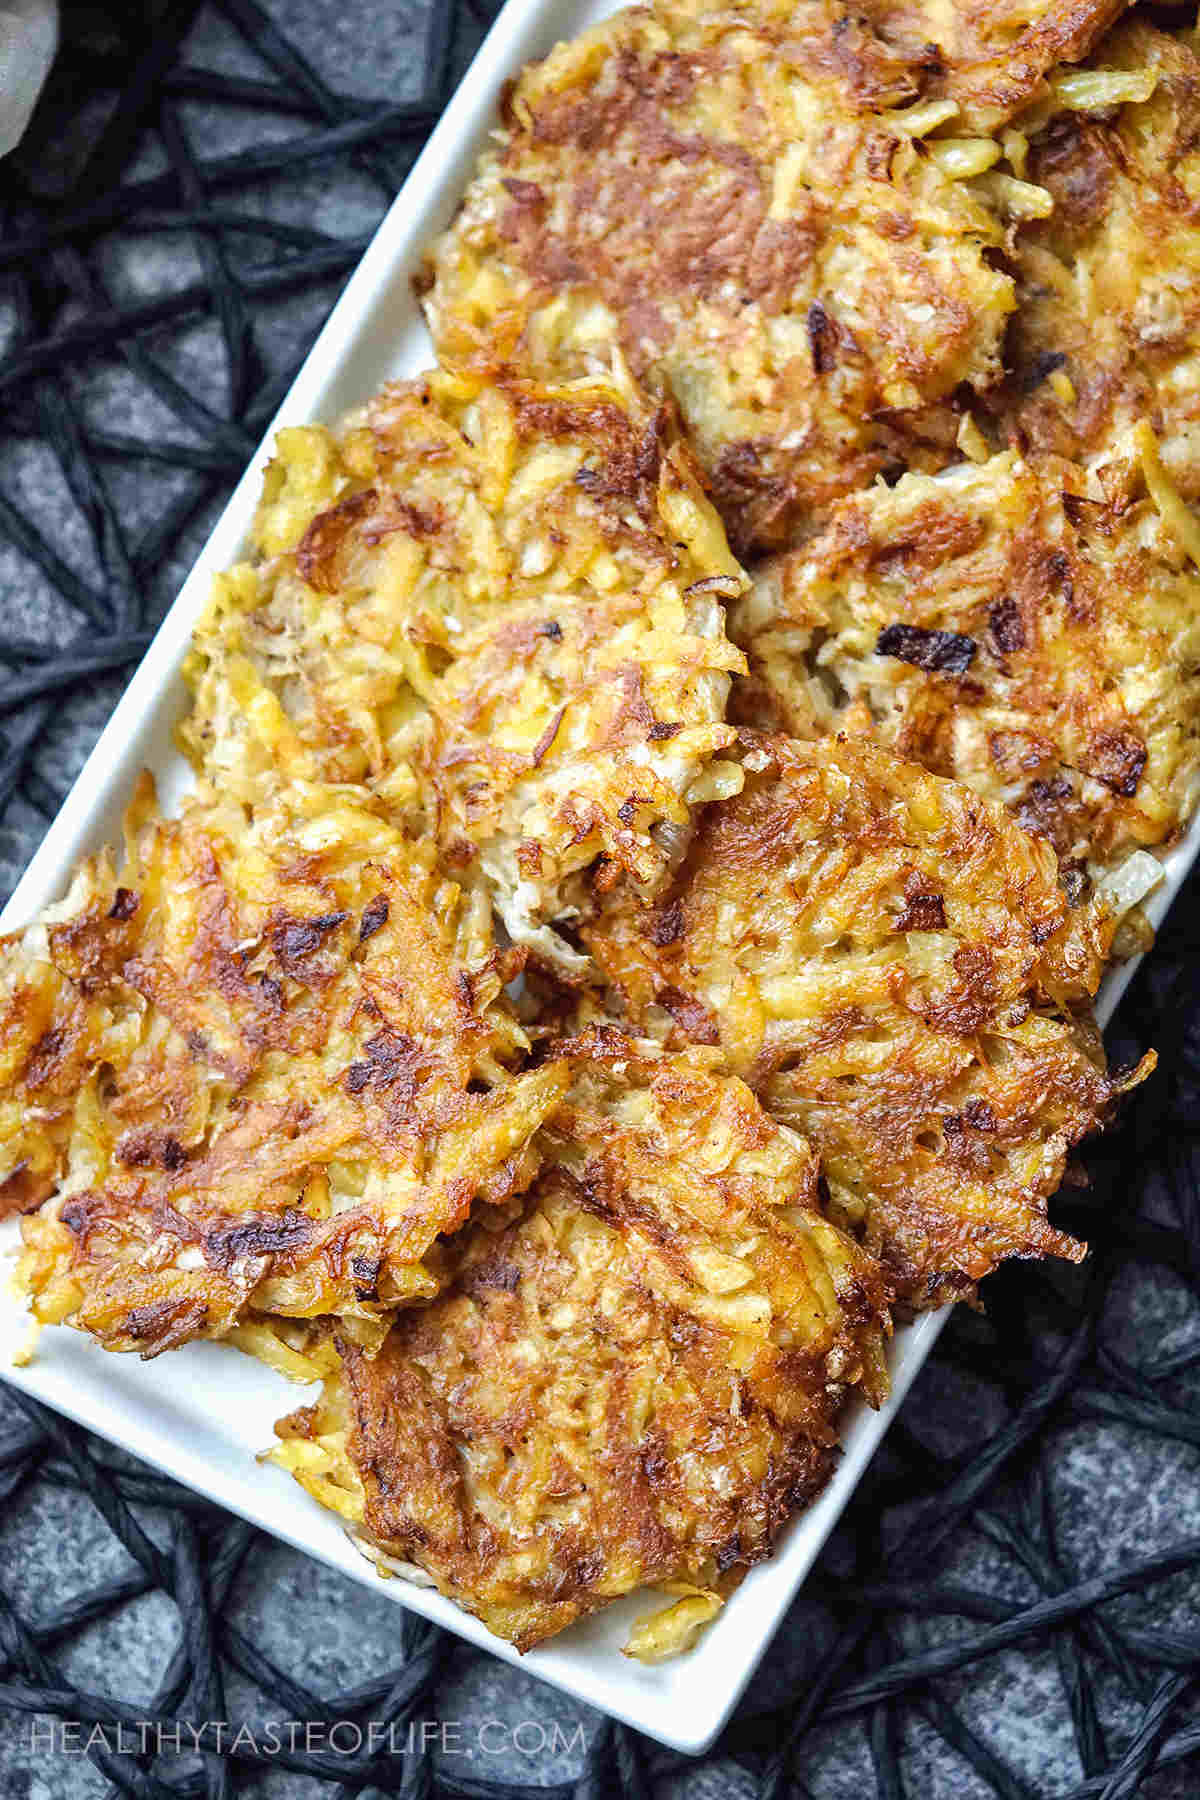 Potato fritters with crab arranged on a platter.